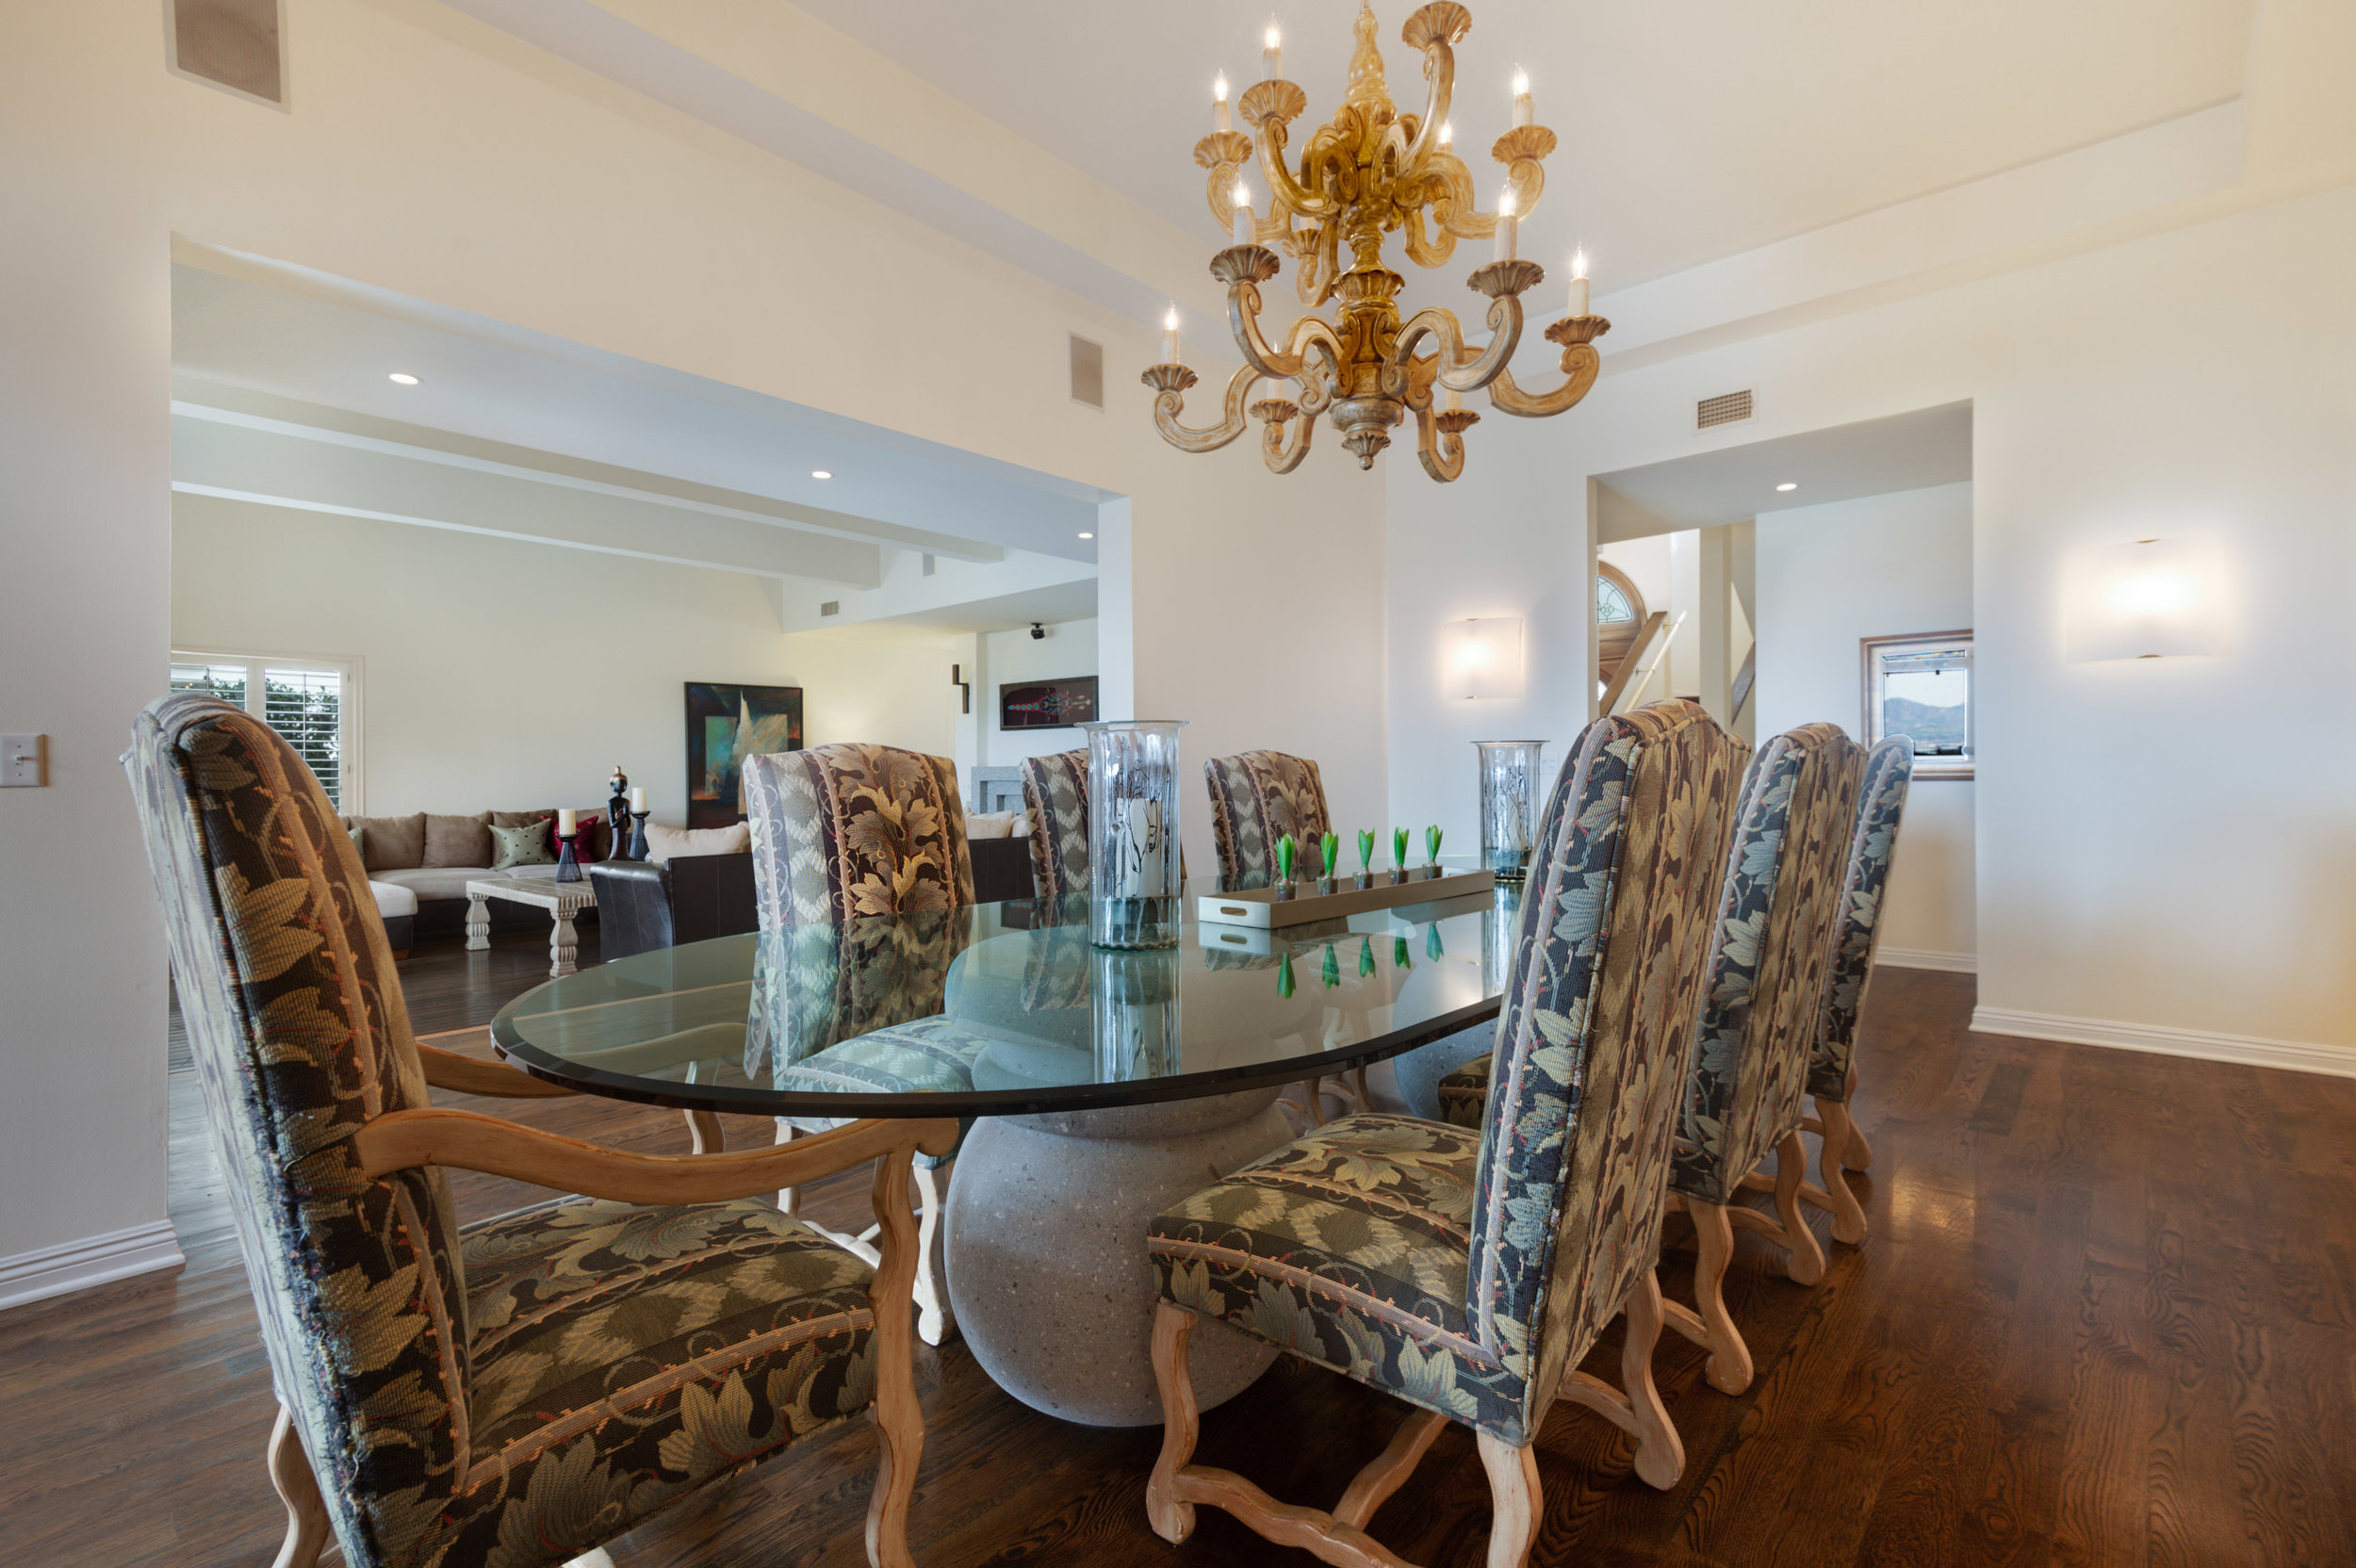 005 Dining 12027 Talus Place Beverly Hills 90210 For Sale Lease The Malibu Life Team Luxury Real Estate.jpg